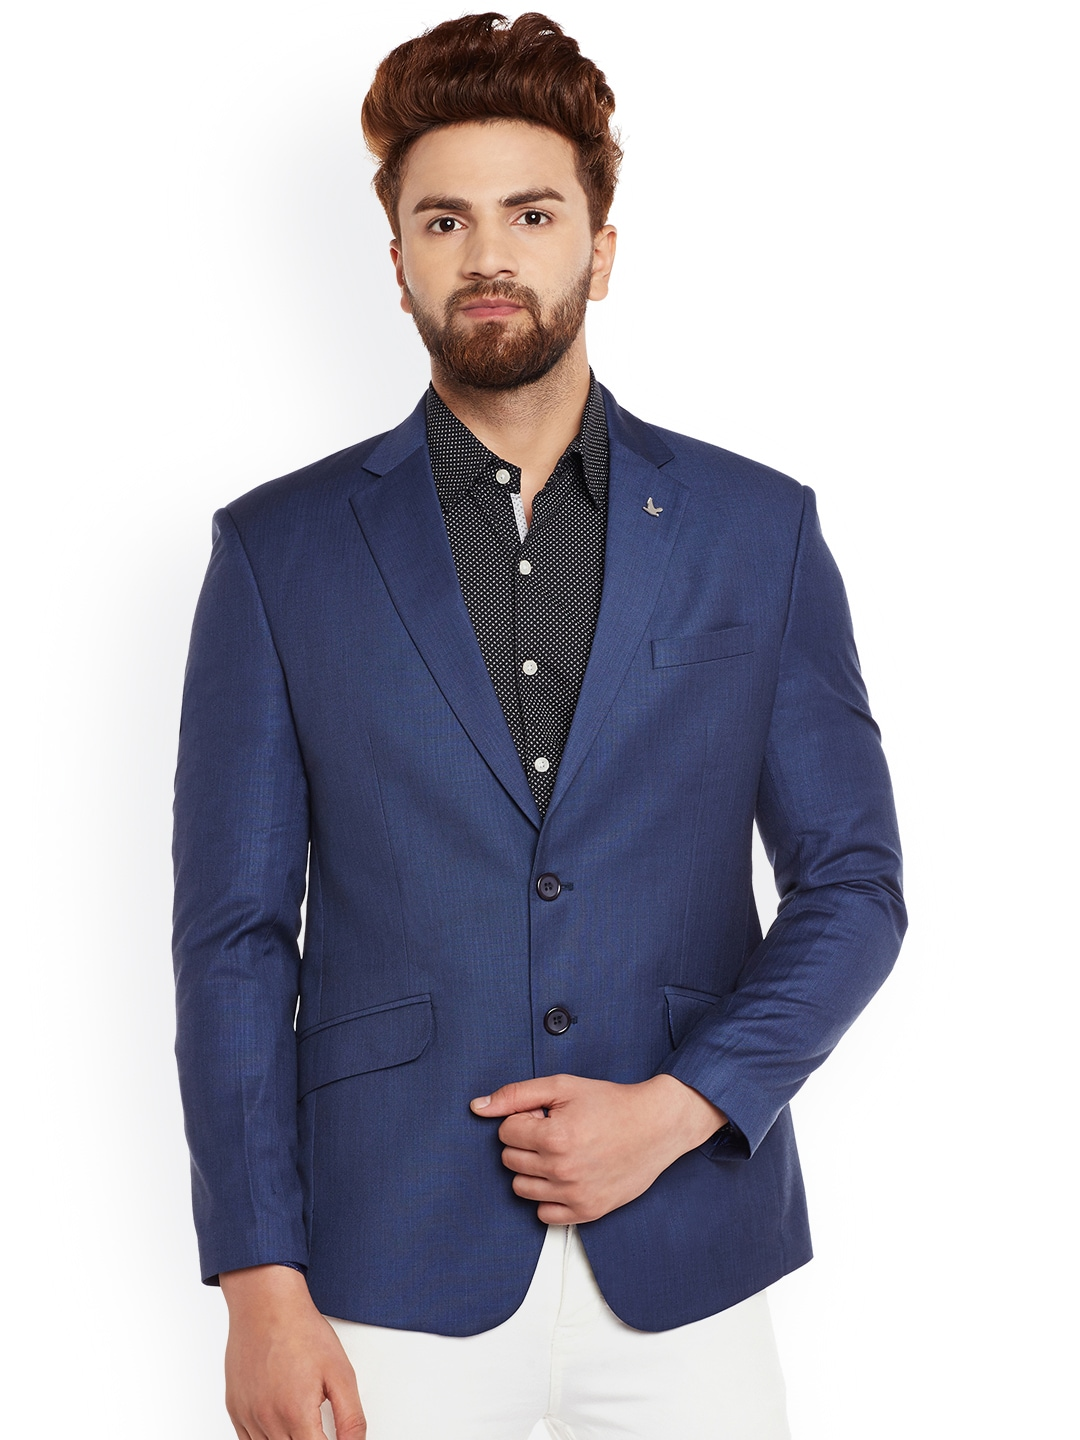 Canary London Blue Slim Fit Single-Breasted Blazer image